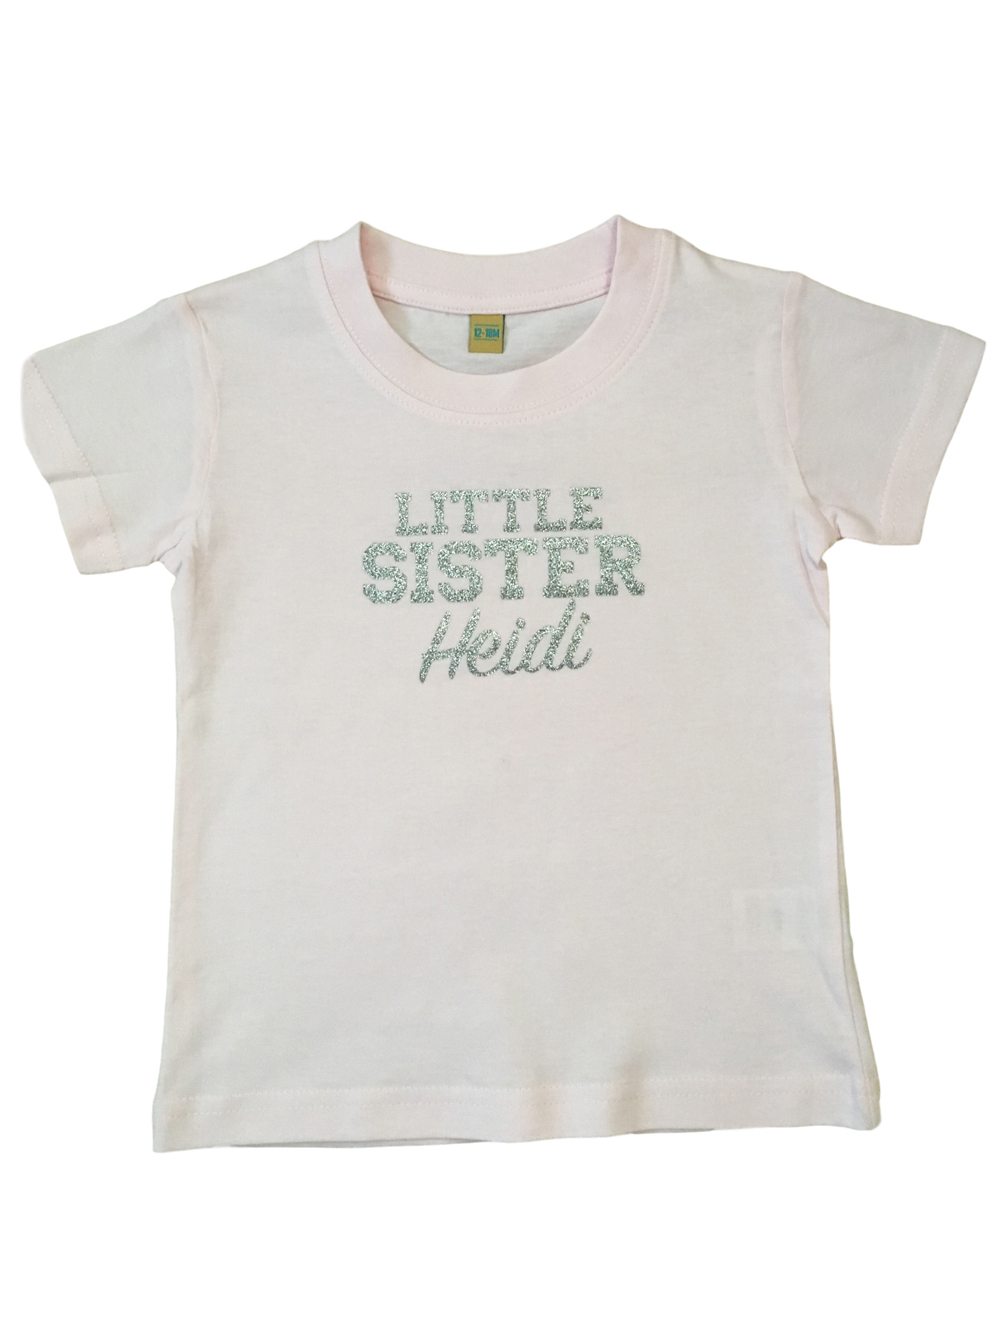 Personalised Little Sister Tshirt